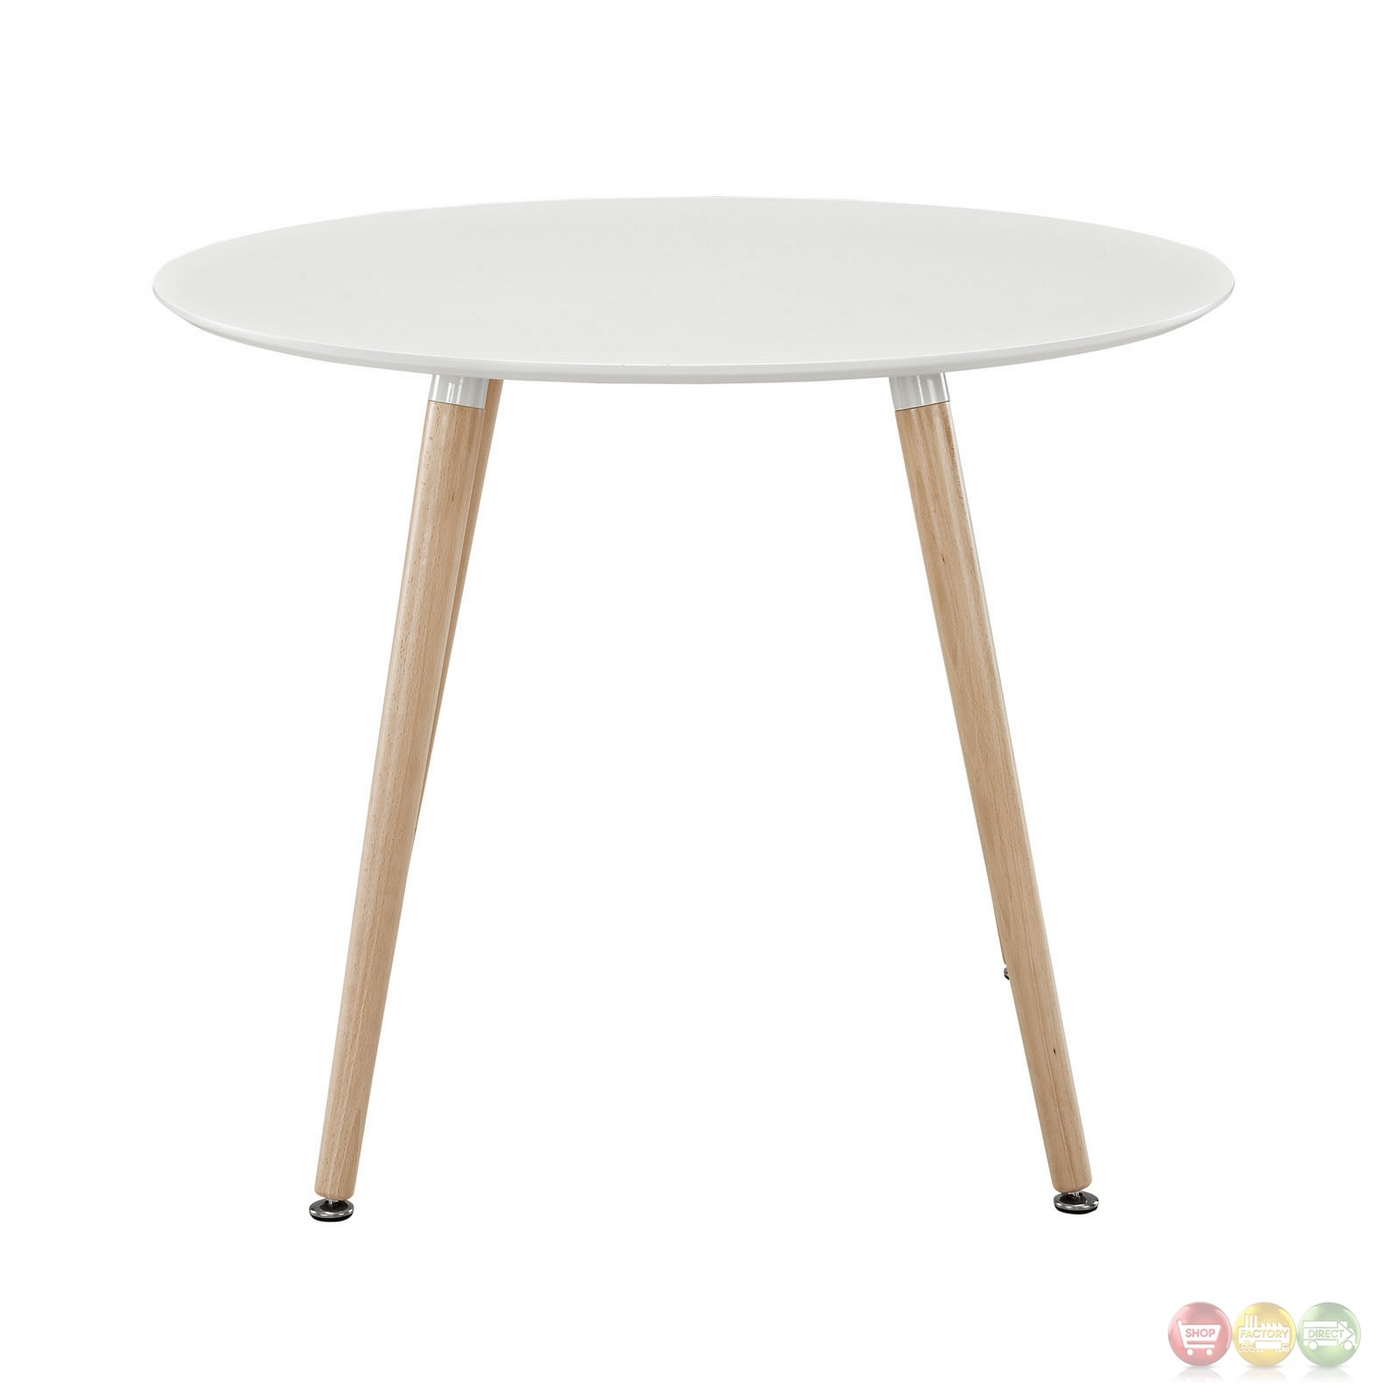 track contemporary 40 round wooden dining table white. Black Bedroom Furniture Sets. Home Design Ideas